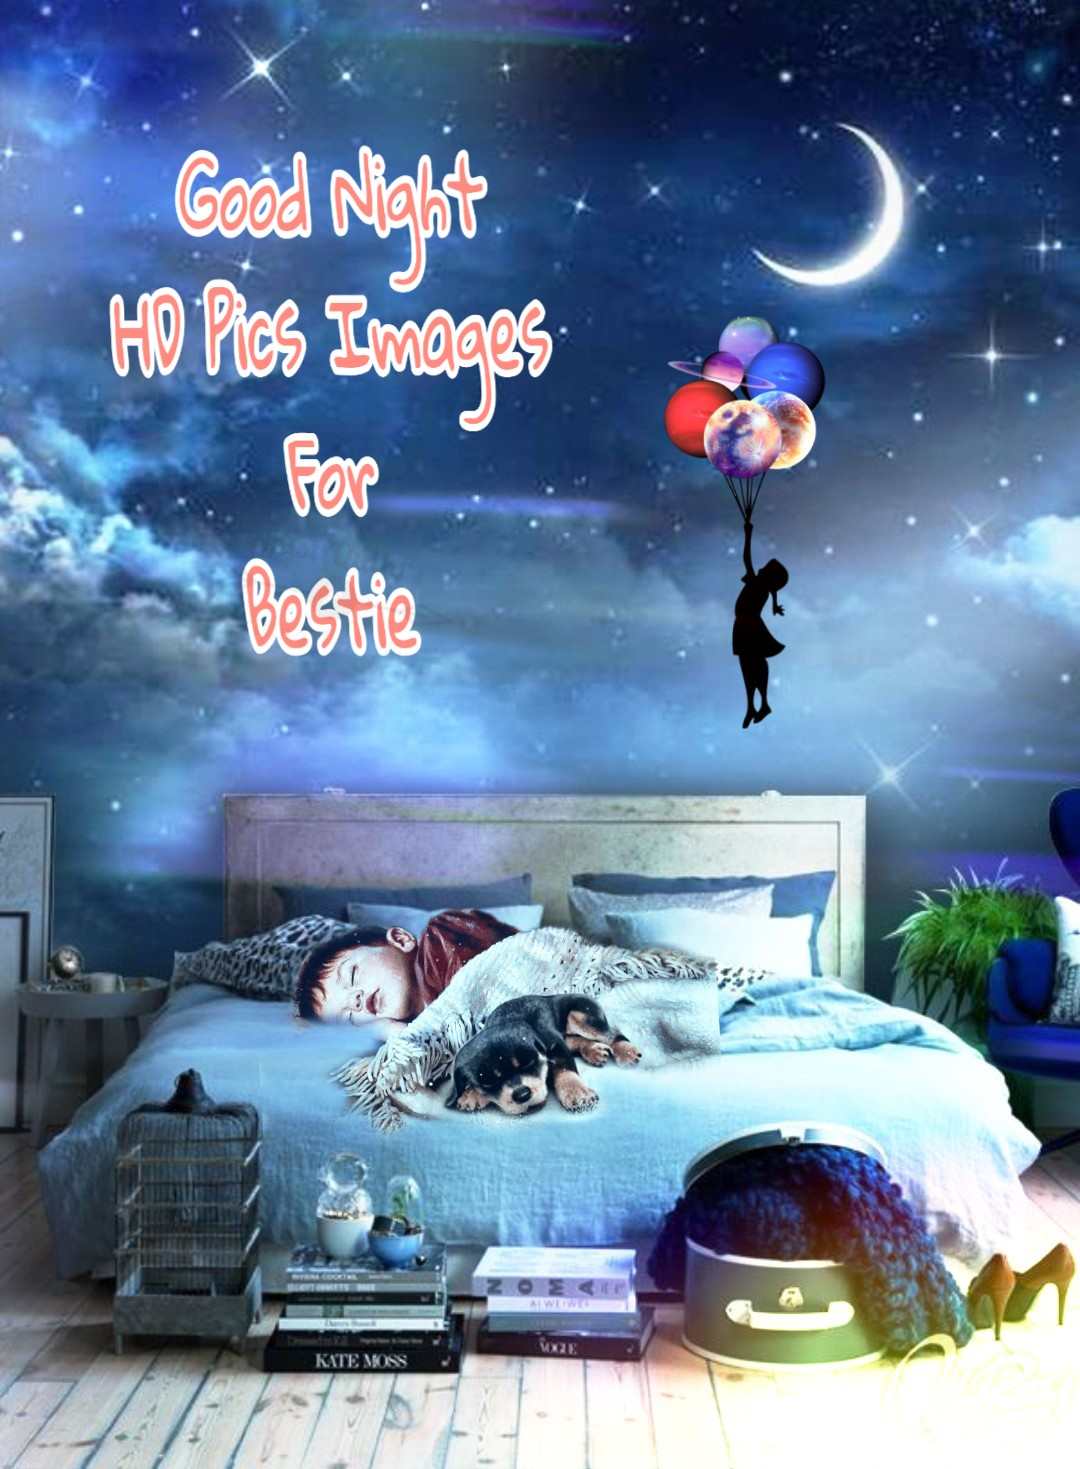 Good Night HD Pics Images For Bestie